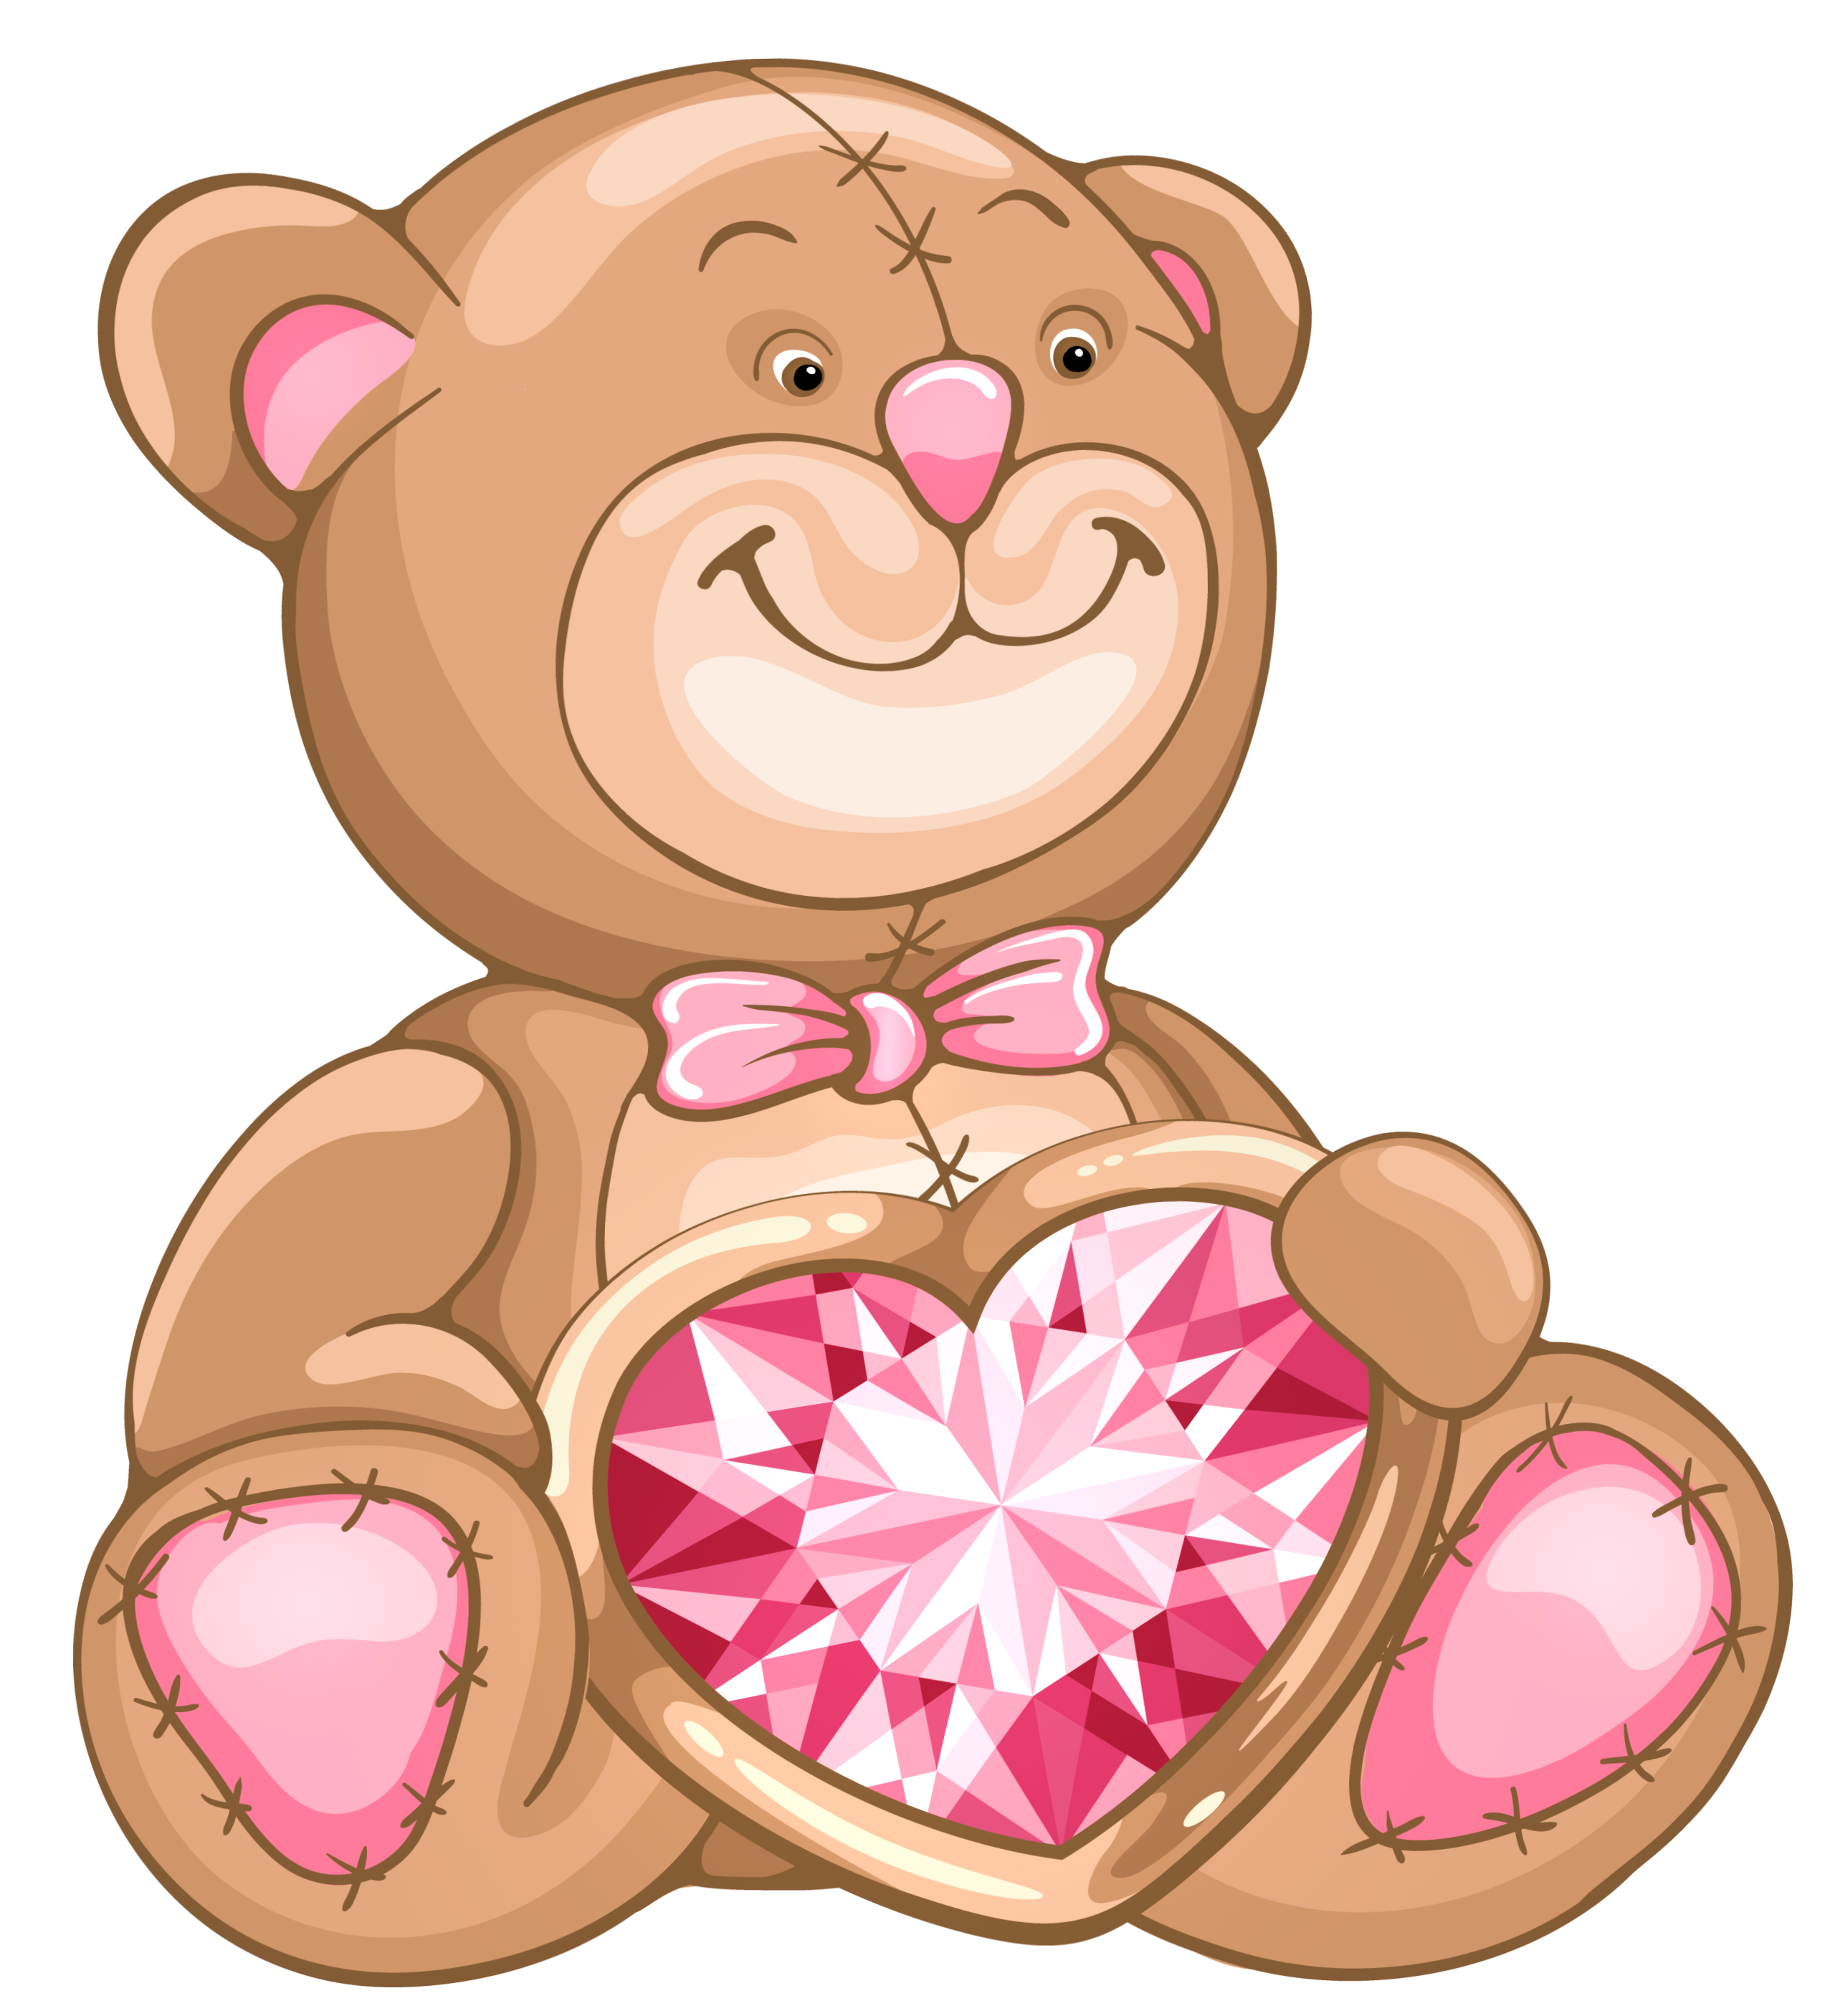 Clipart teddy bear with heart banner download Transparent Teddy Bear with Diamond Heart PNG Clipart | Gallery ... banner download